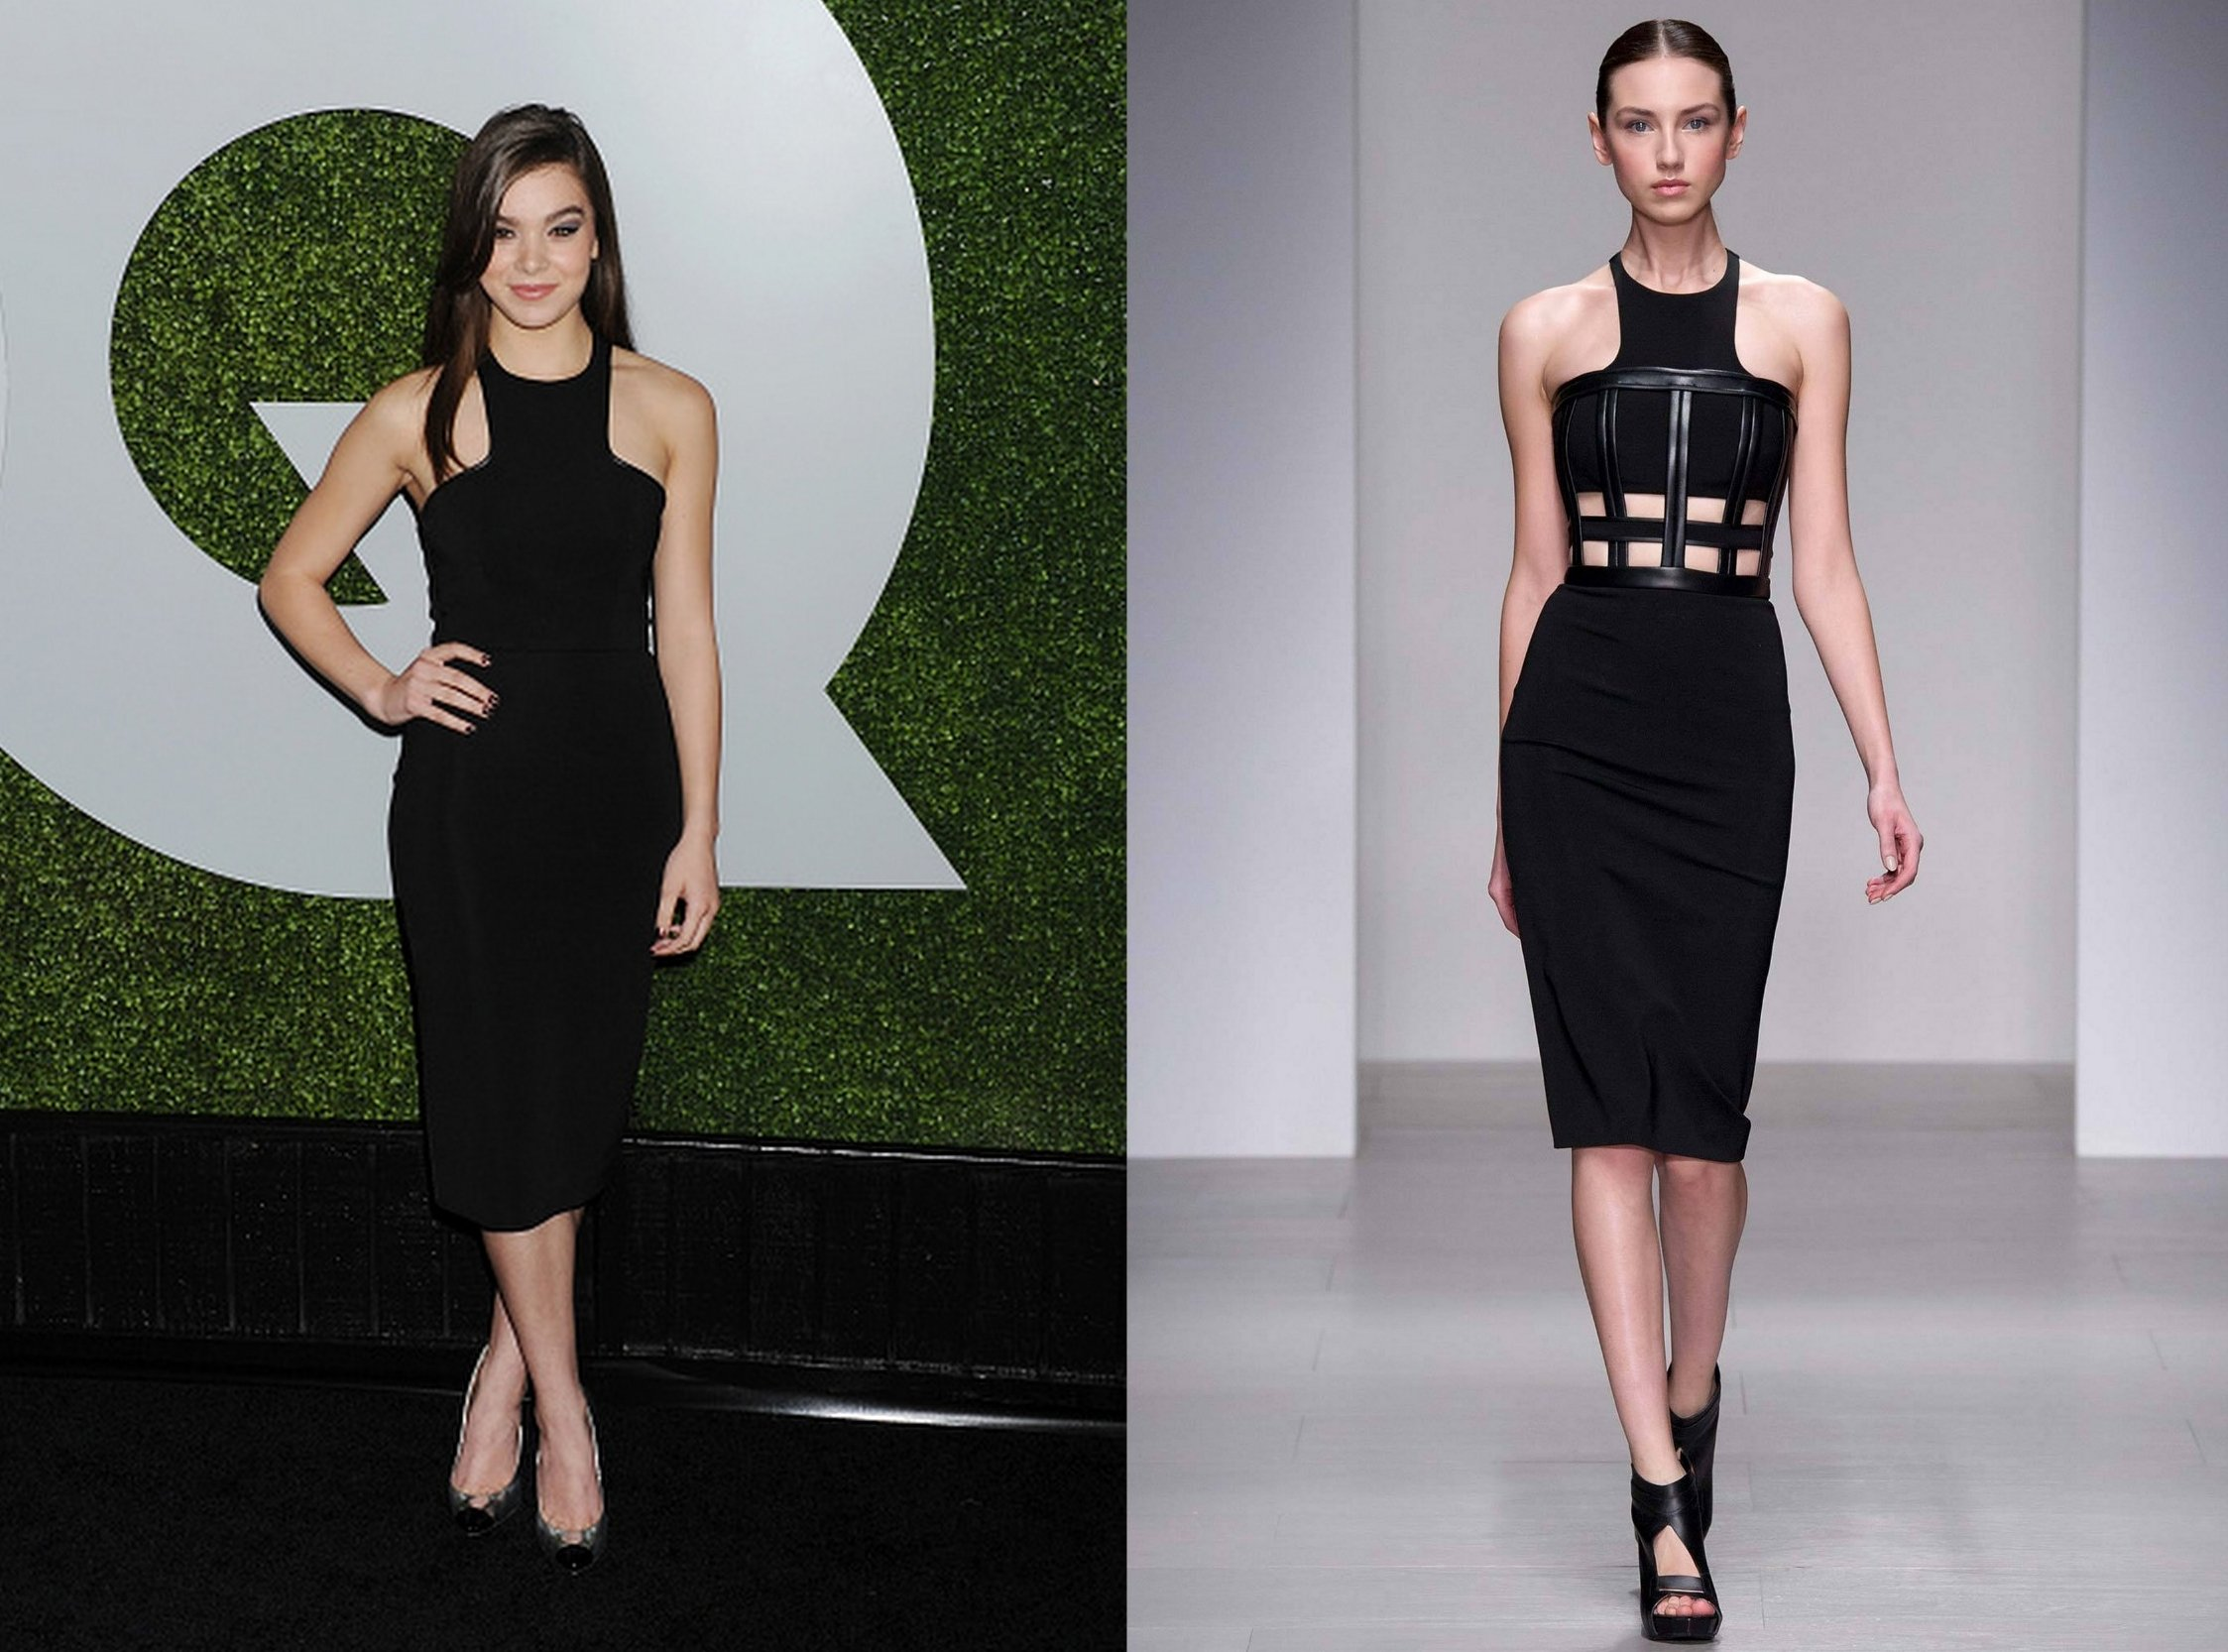 Hailee-Steinfeld-Wears-David-Koma-2014-GQ-Men-Of-The-Year-Party.jpg.